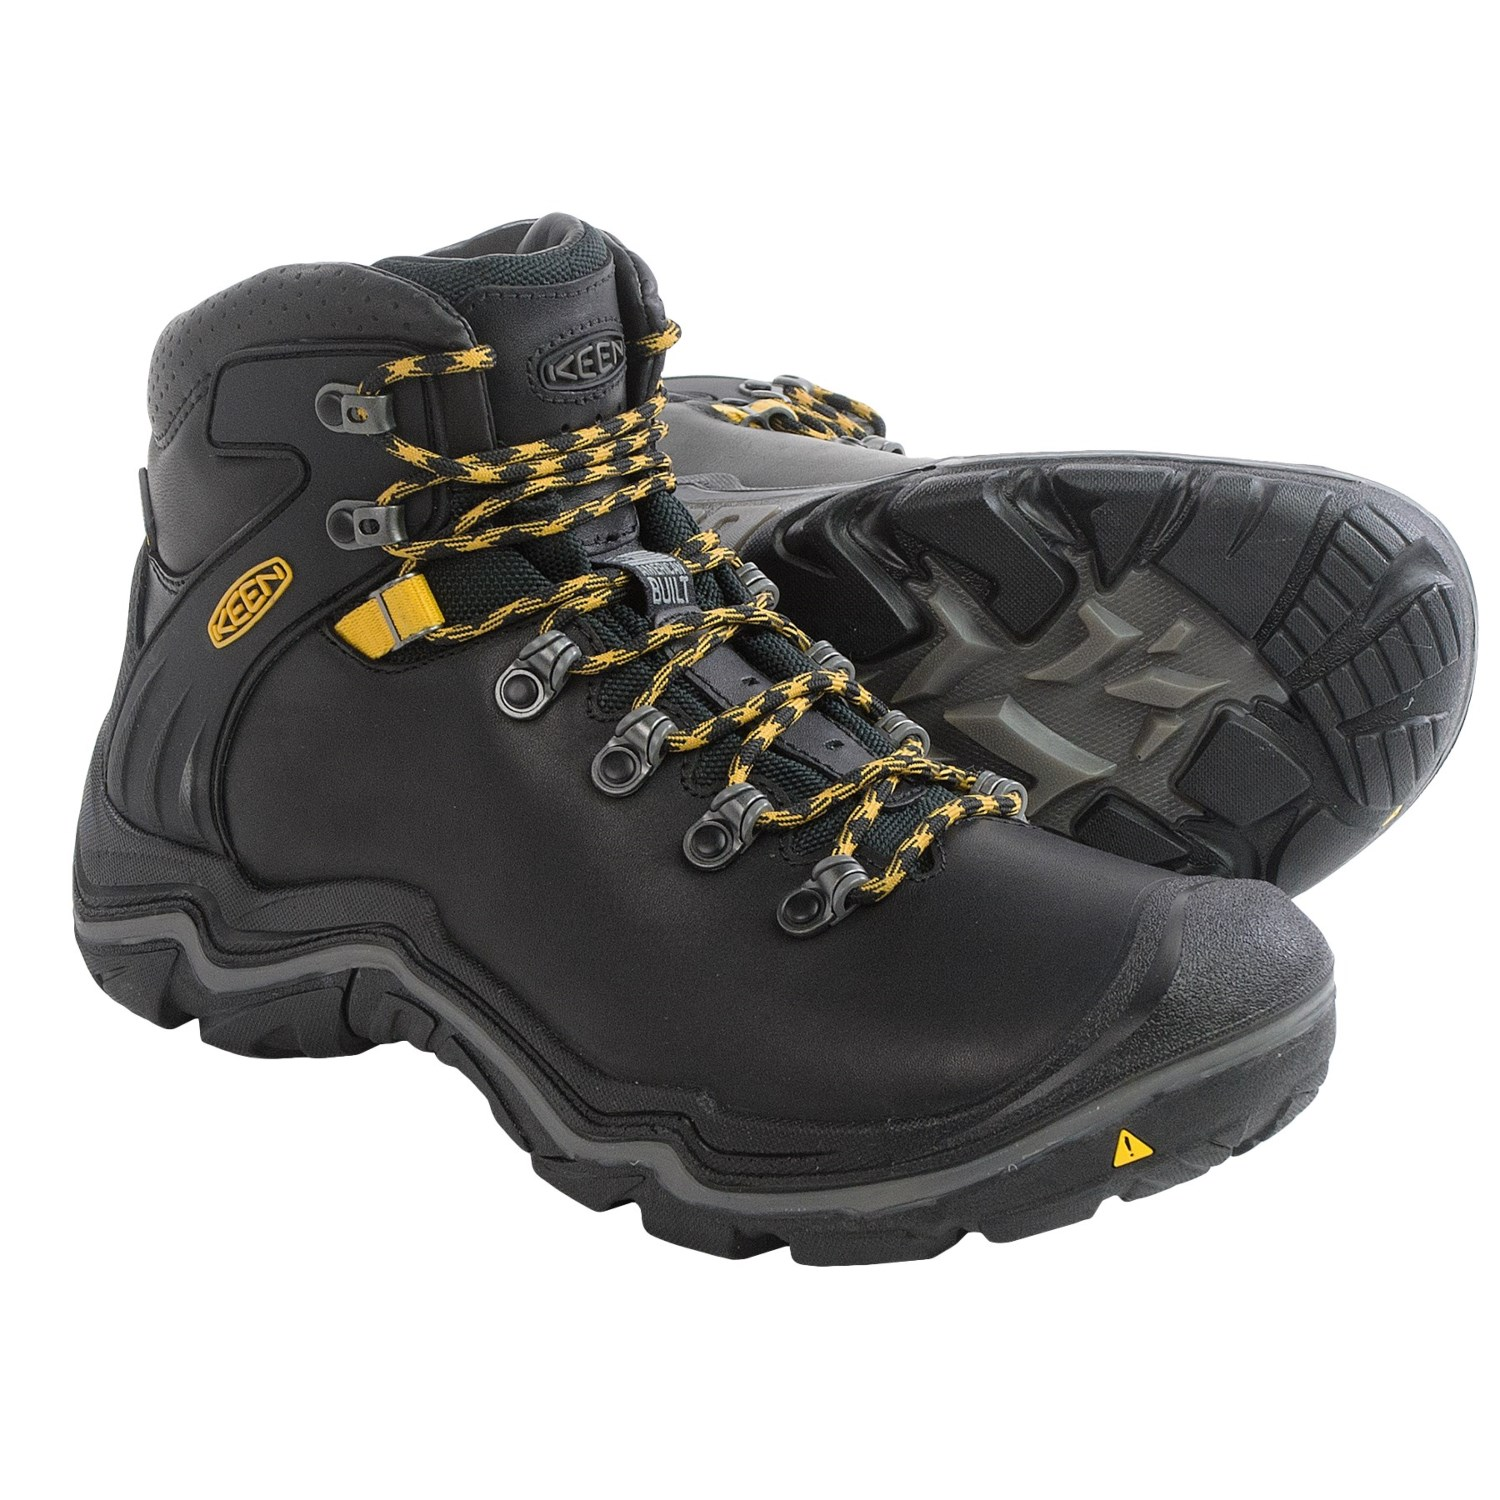 Shop a great selection of Keen at Nordstrom Rack. Find designer Keen up to 70% off and get free shipping on orders over $